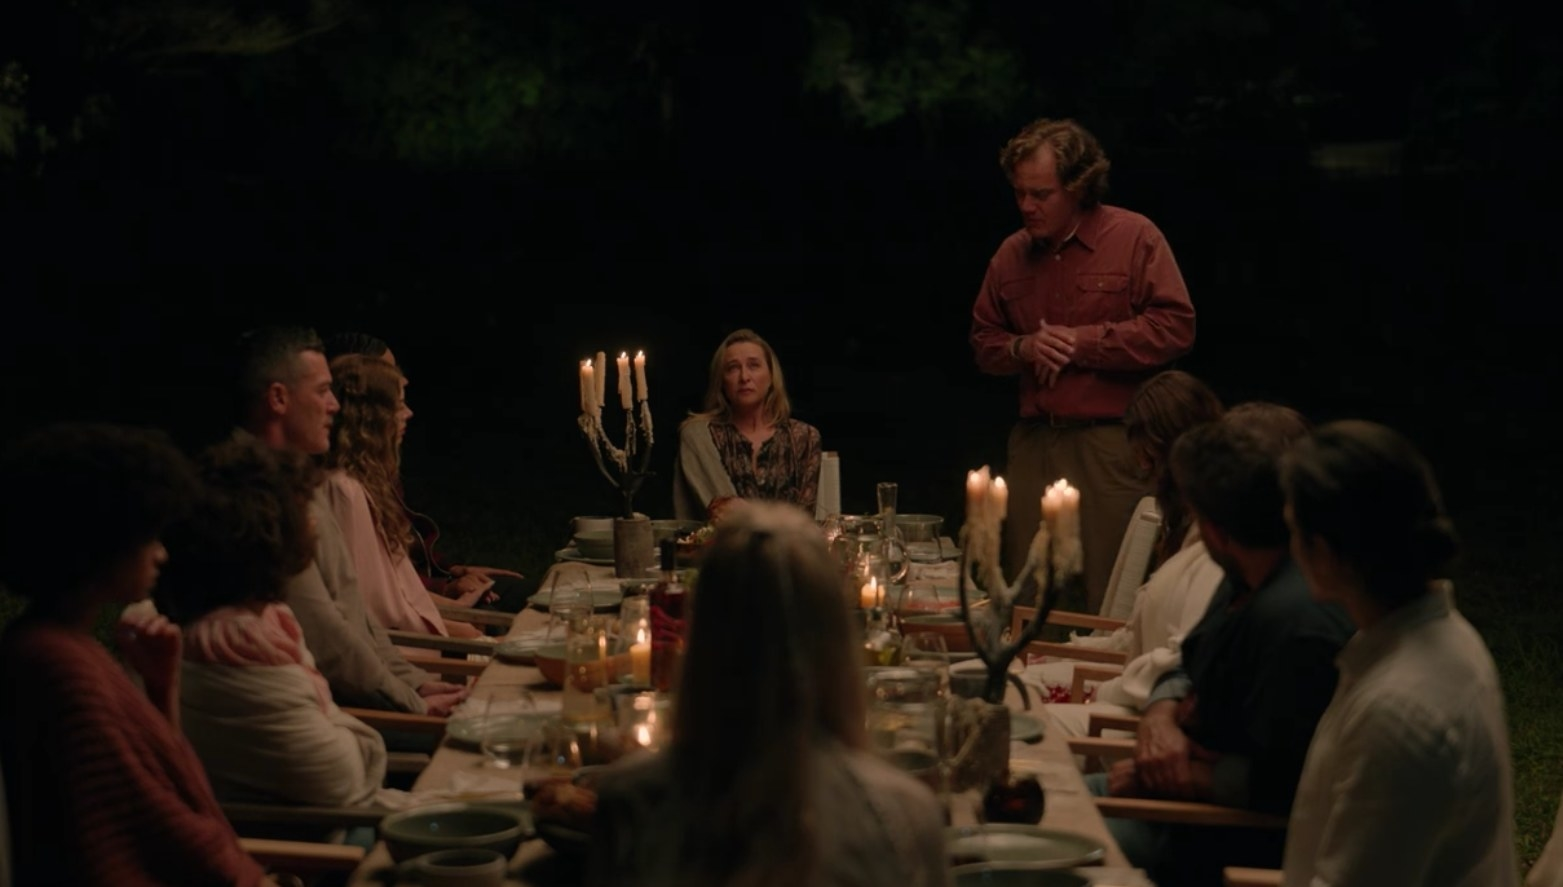 The guests sit around a dinner table outdoors at nighttime, Napoleon is standing to speak to them all